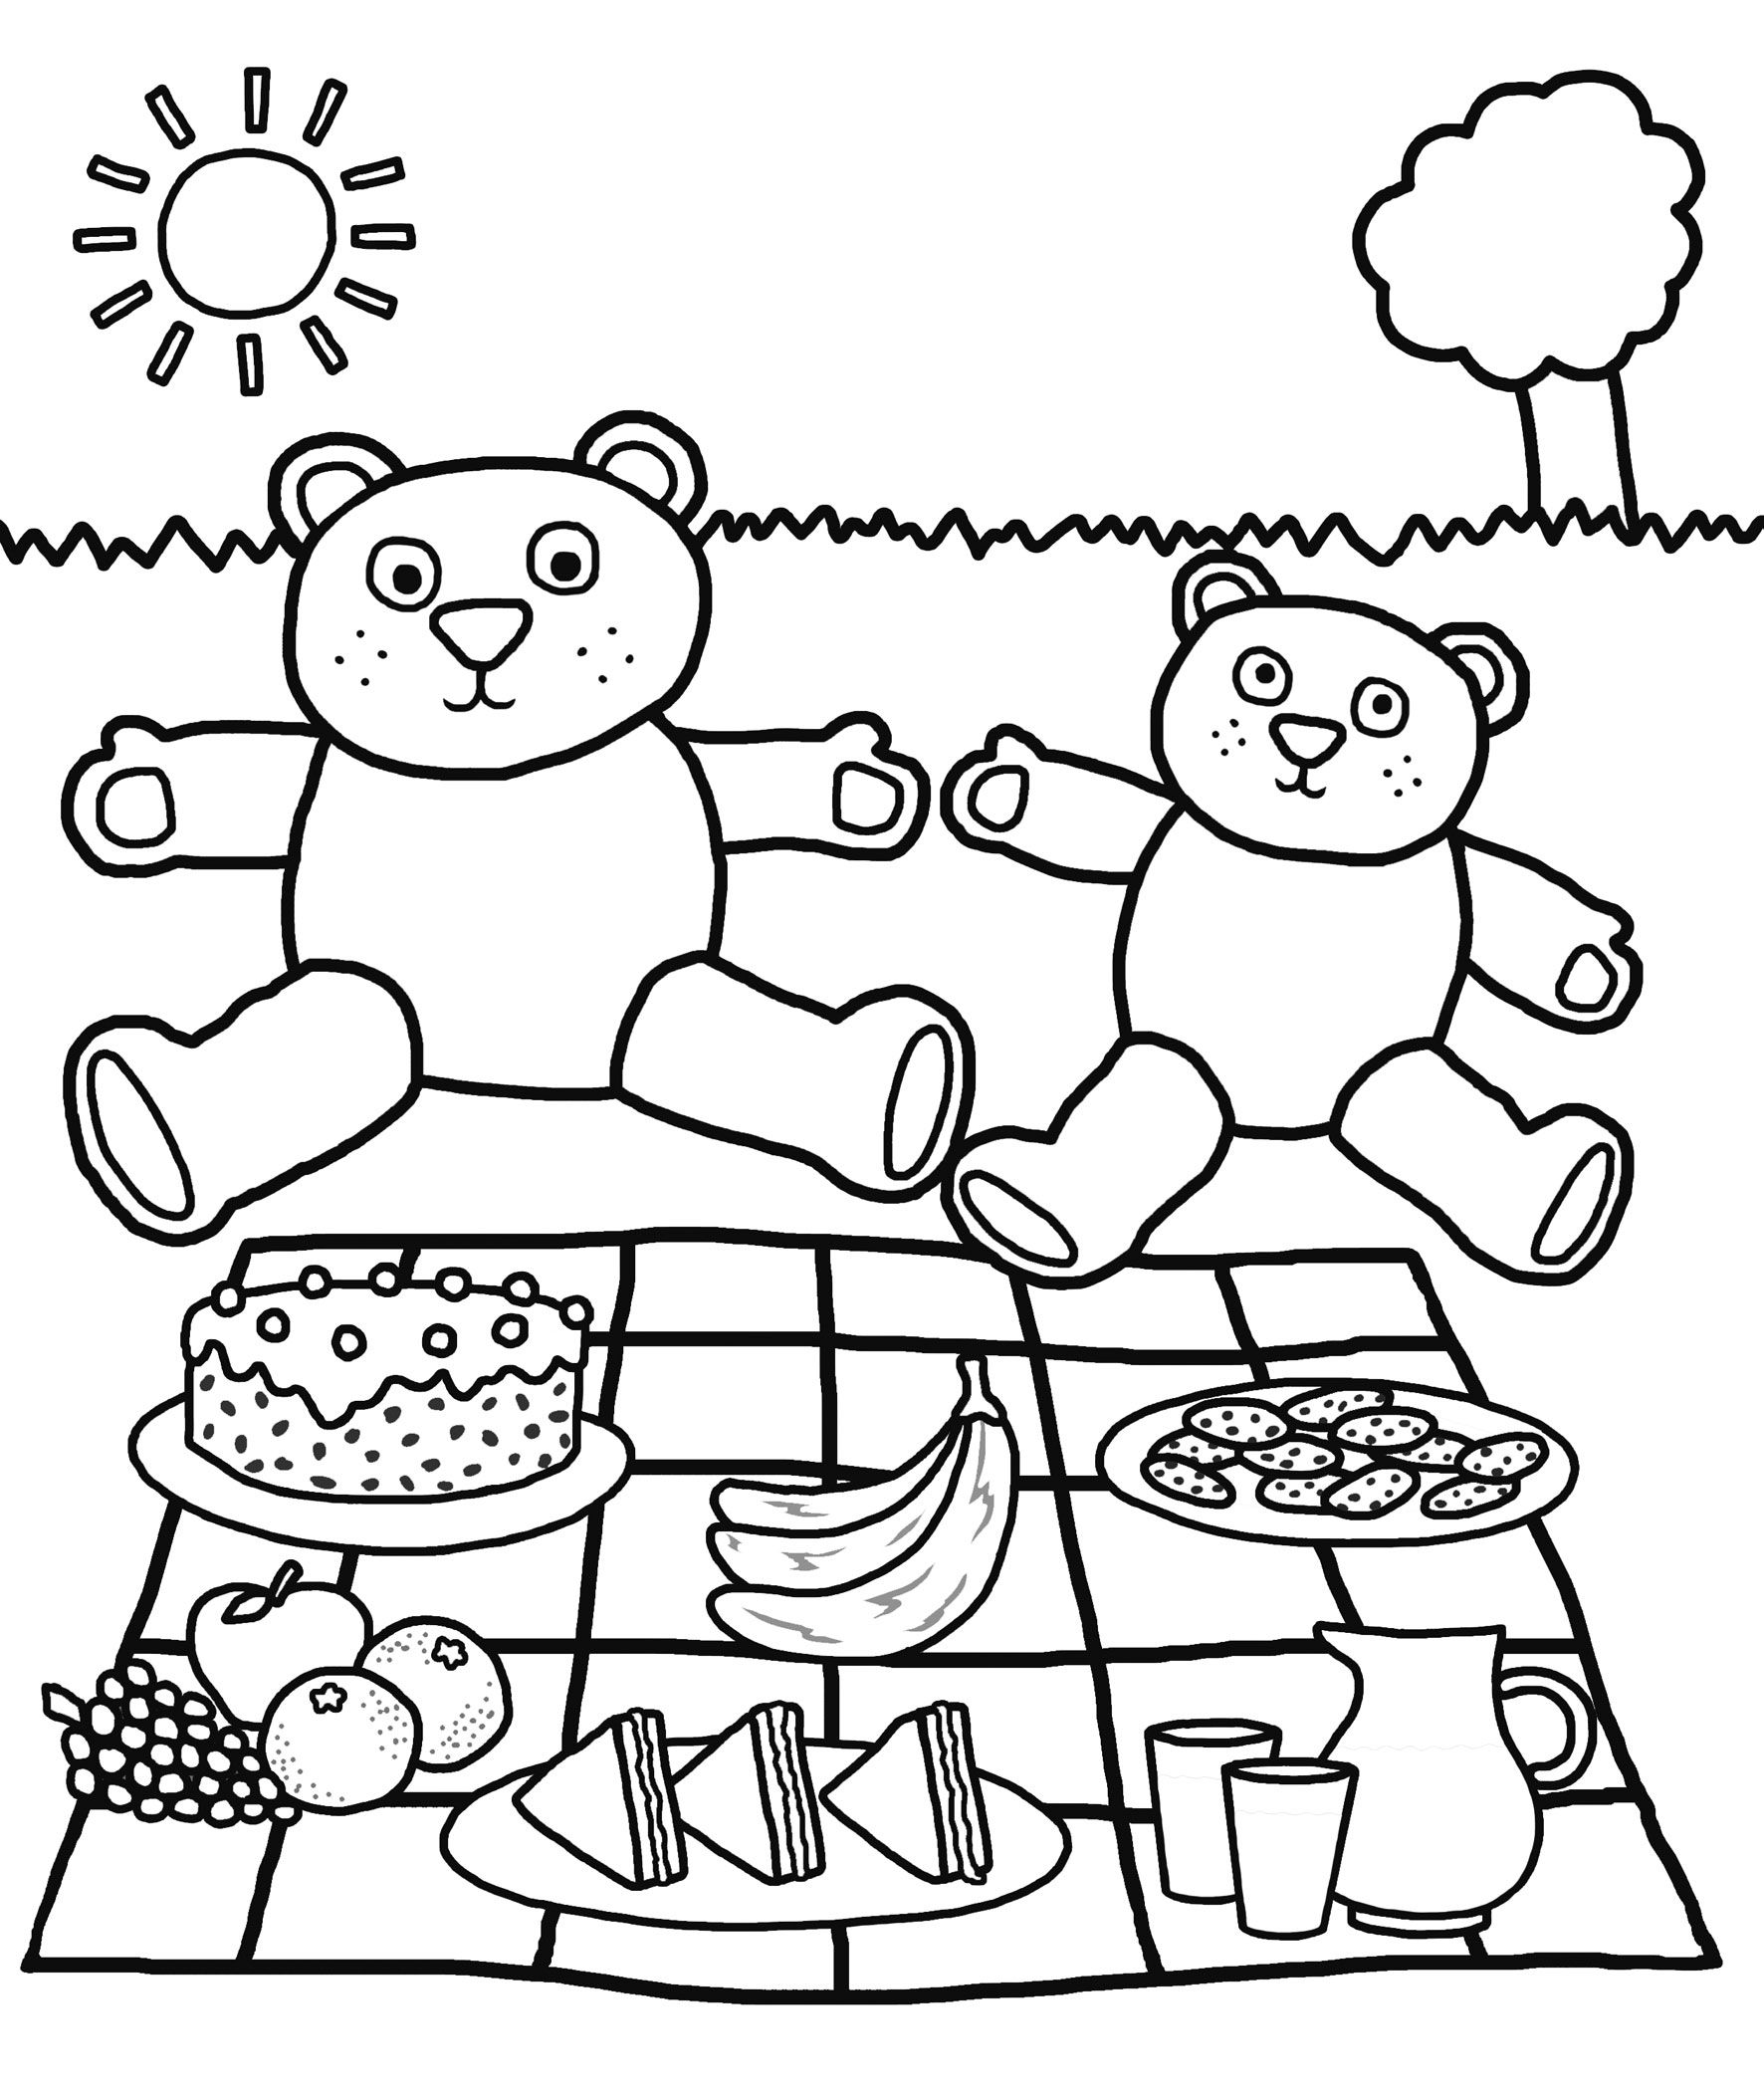 teddy bear picnic color page | imprimibles | Pinterest | Bären ...